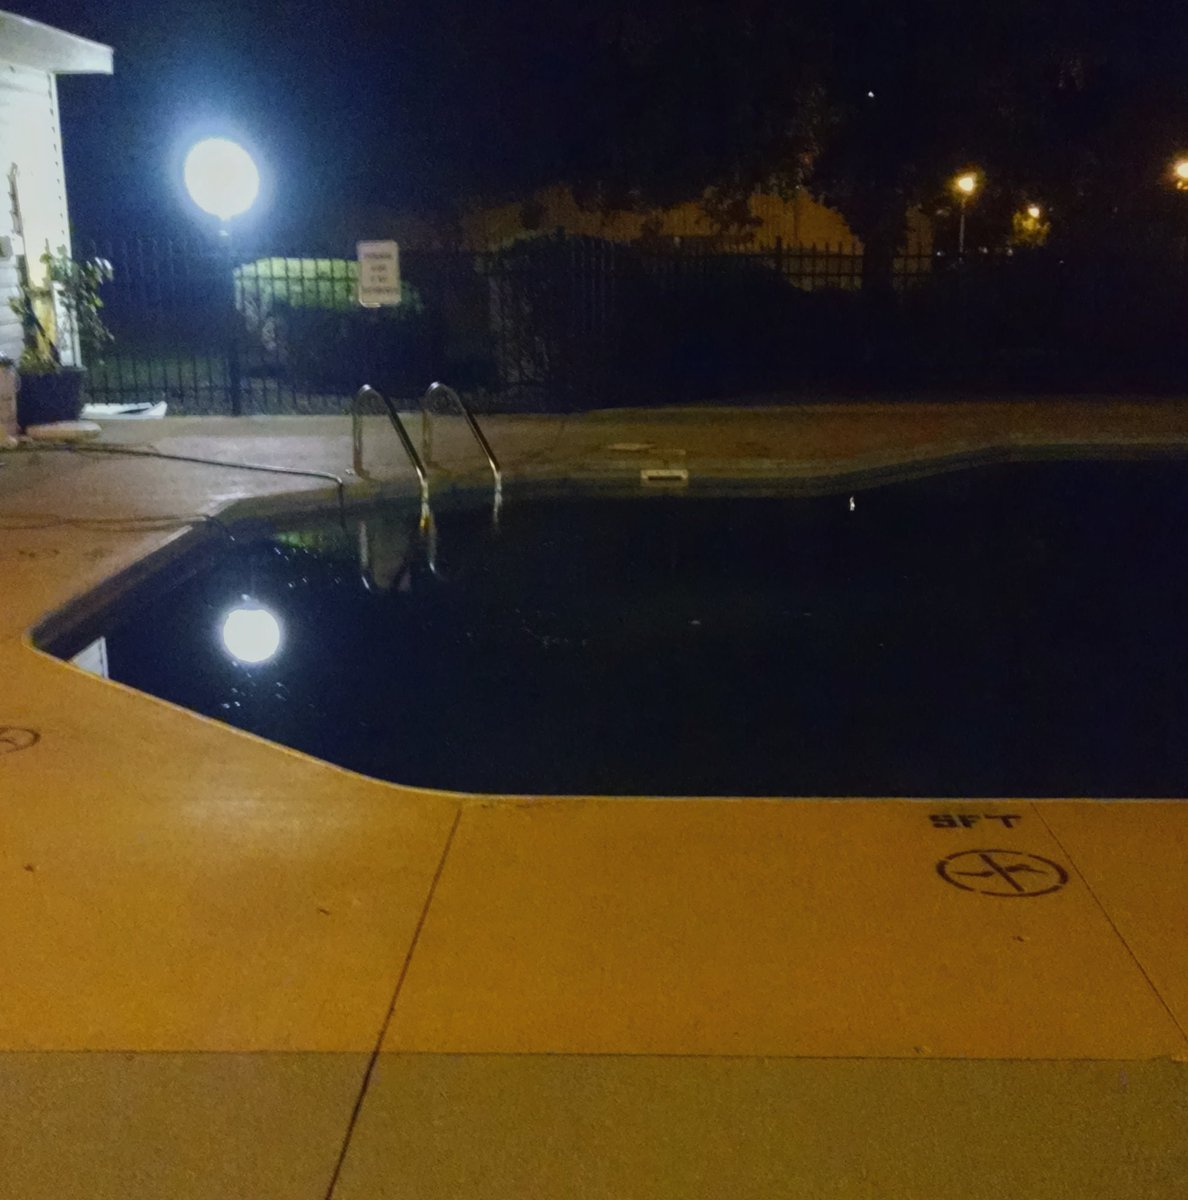 Doobie Bros sang about this. #blackwater #poolclosed<br>http://pic.twitter.com/dhLZ96dwJe